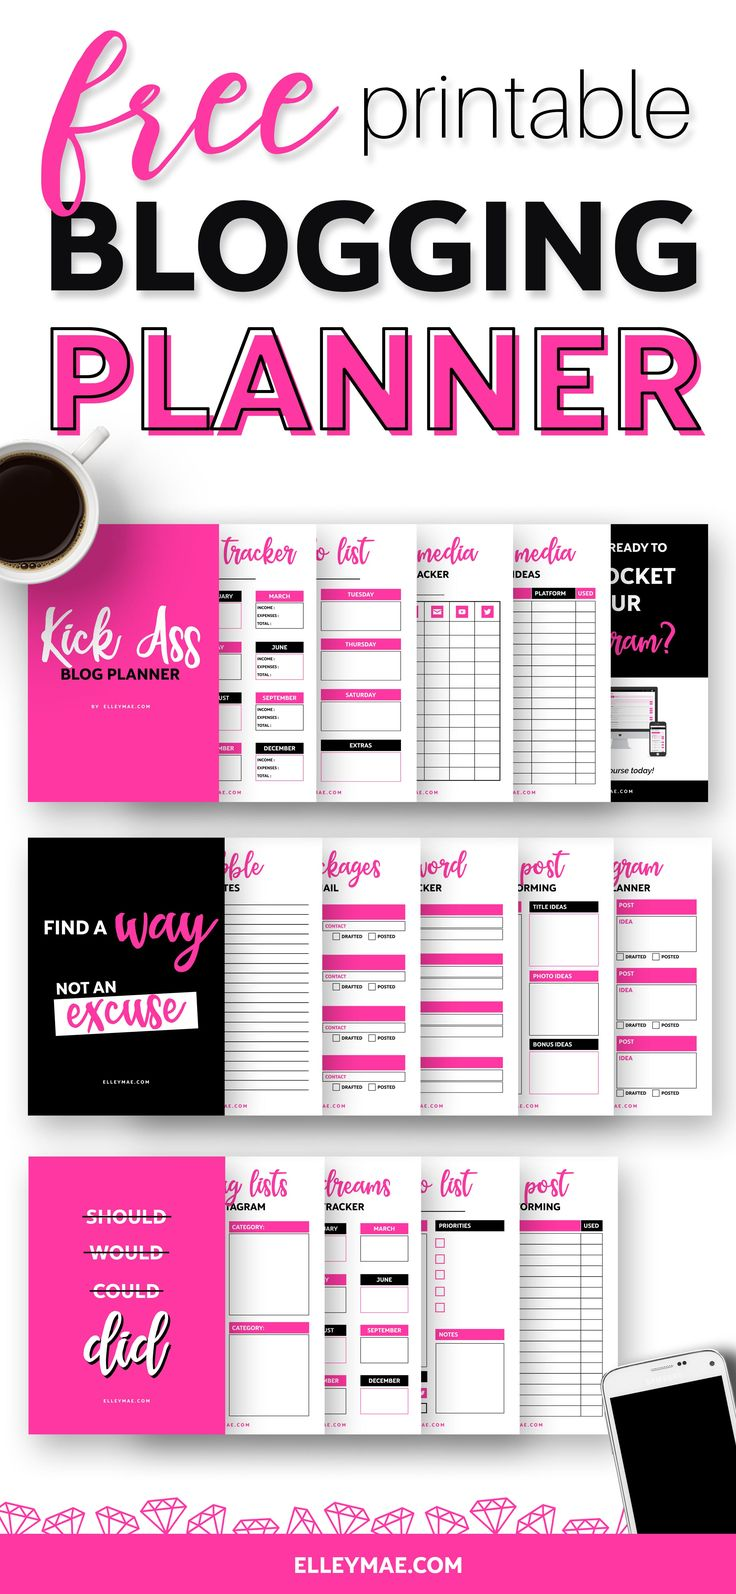 Ready To Kick Ass, Hey?Download your FREE Kick Ass Blog Planner below! INSTANT DOWNLOAD